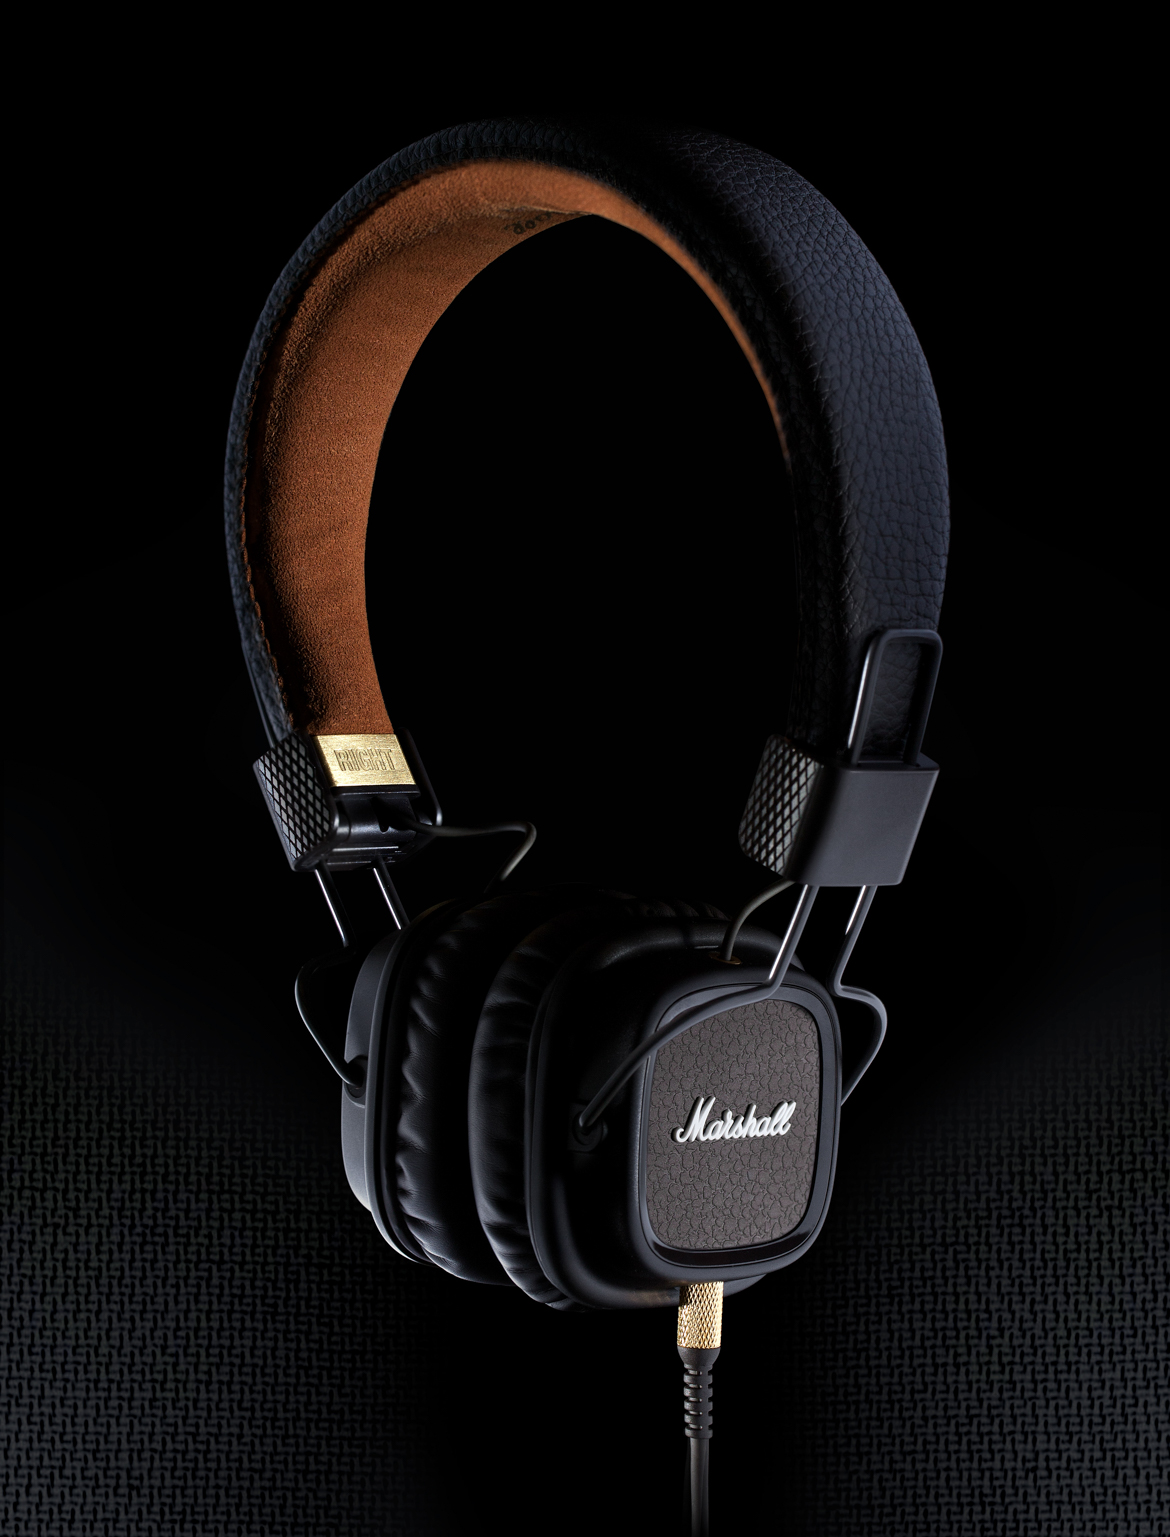 Marshall-Headphones-background-Edit-2